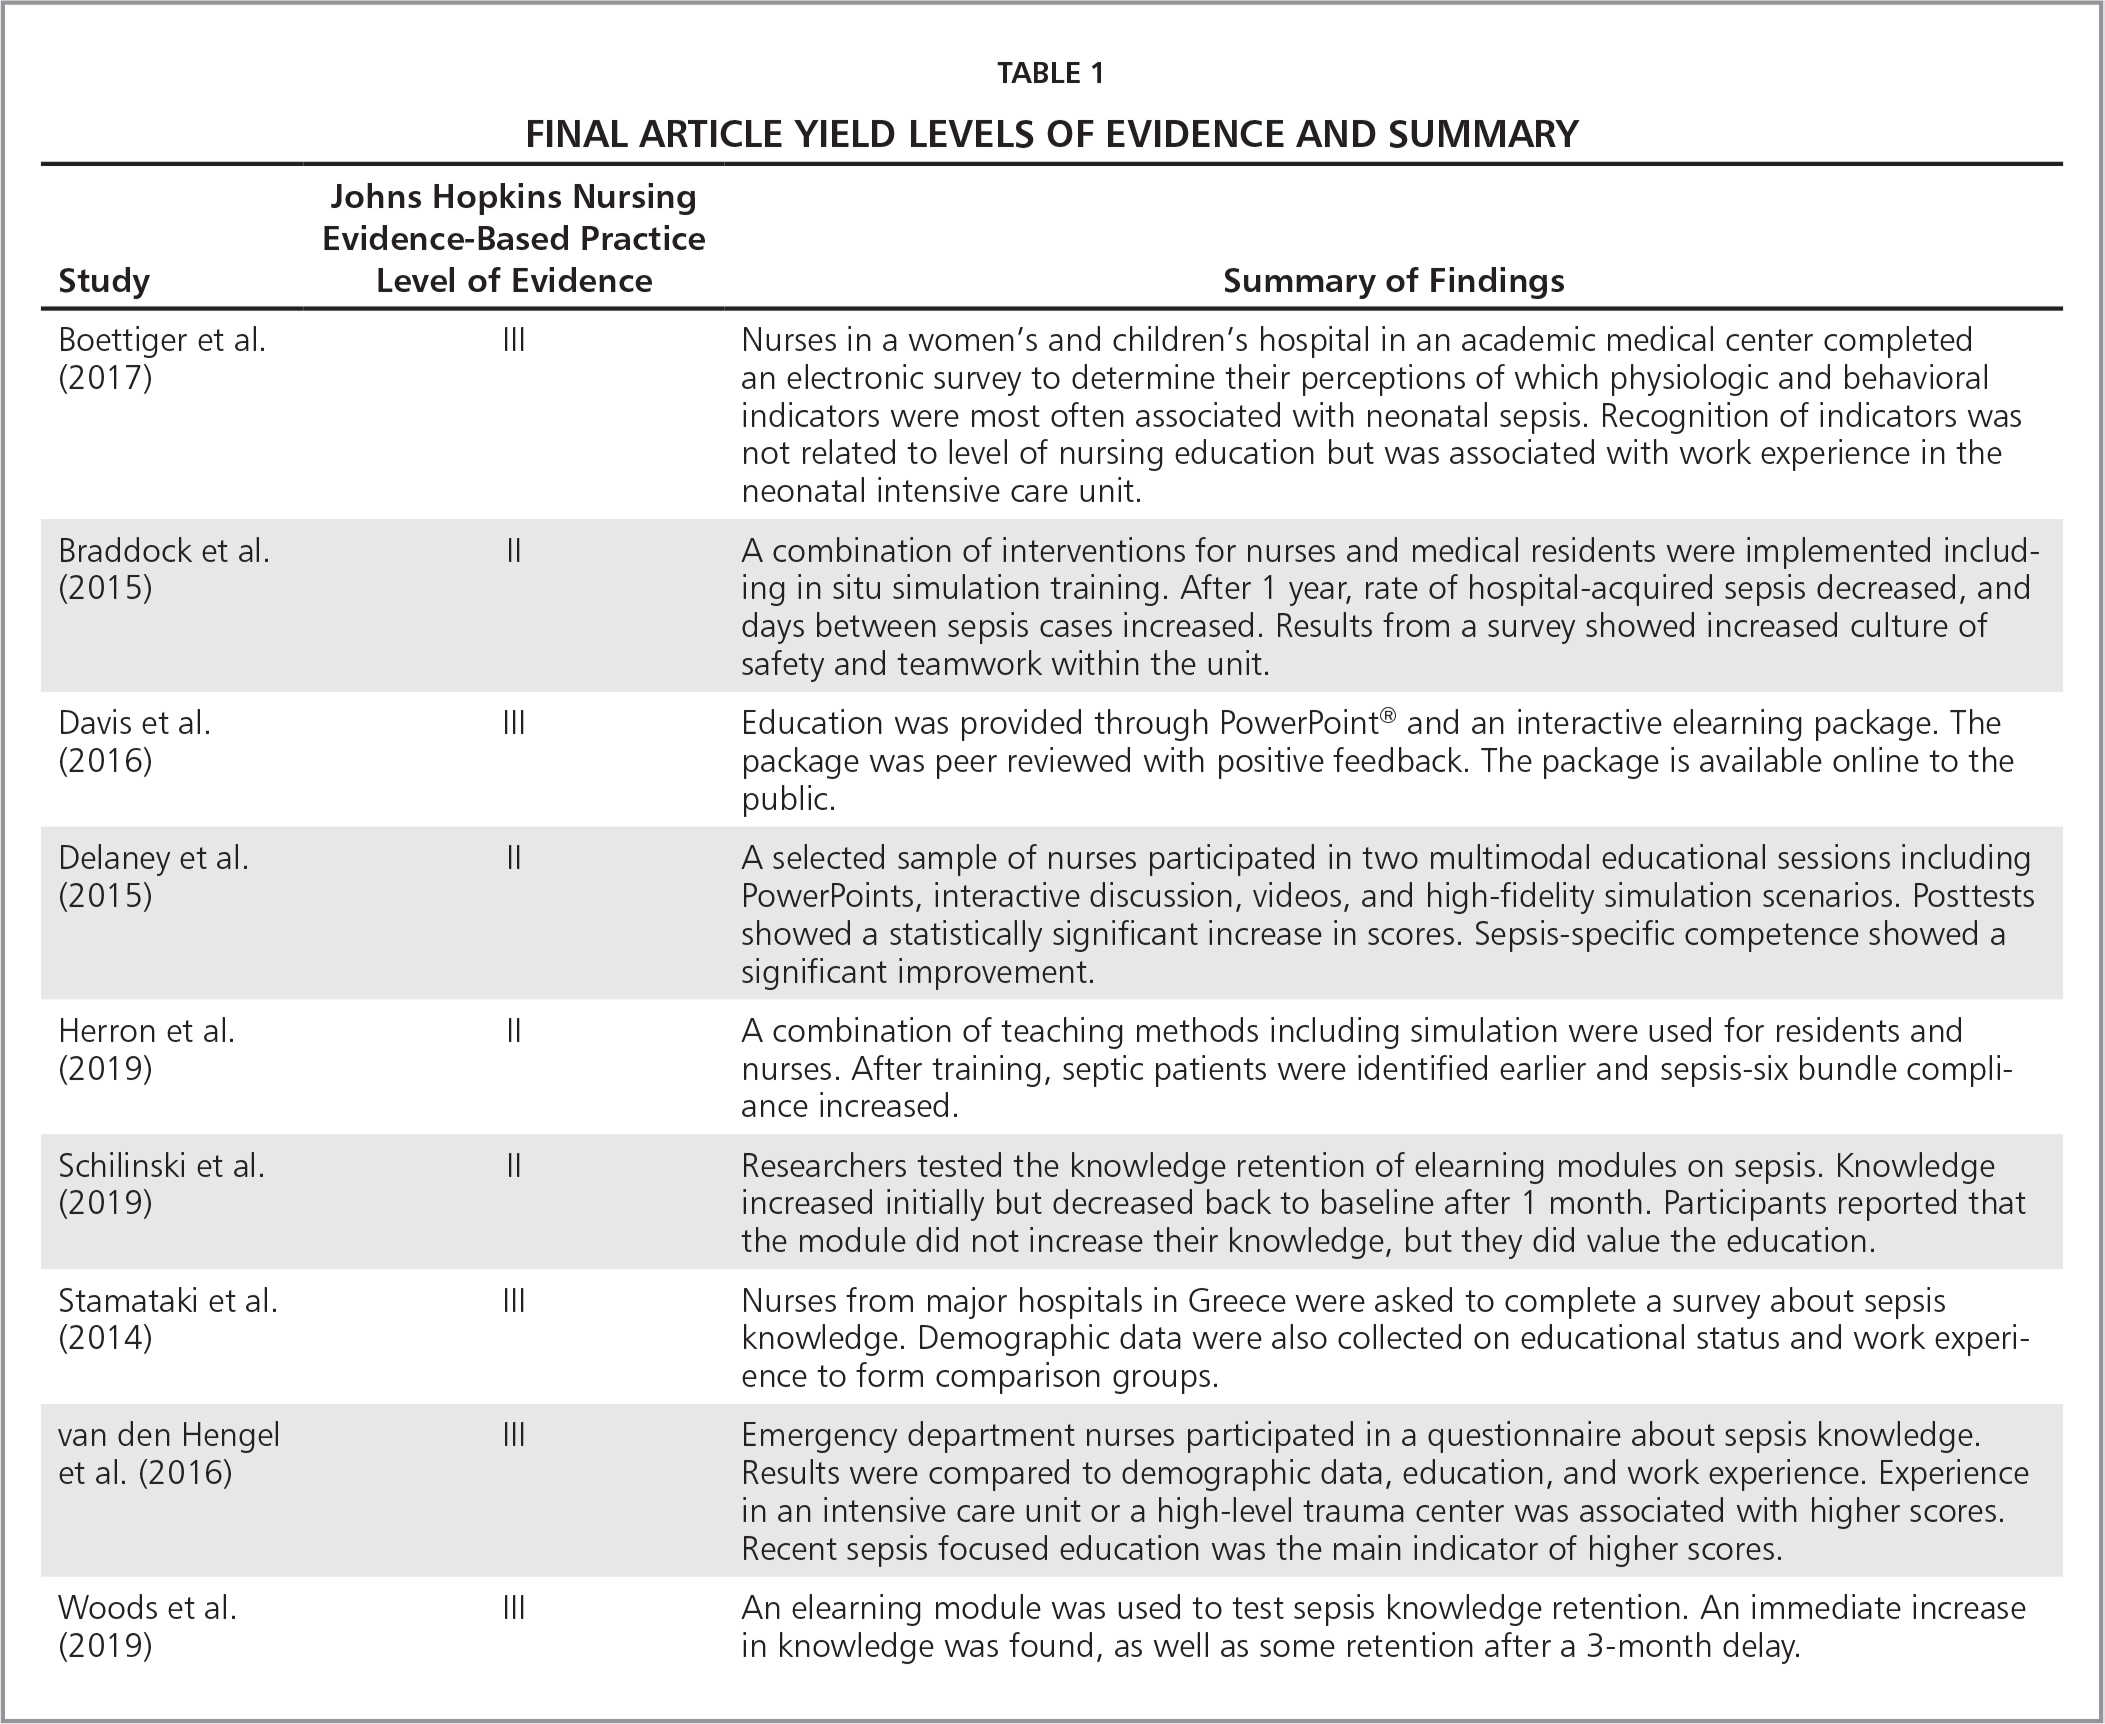 Final Article Yield Levels of Evidence and Summary